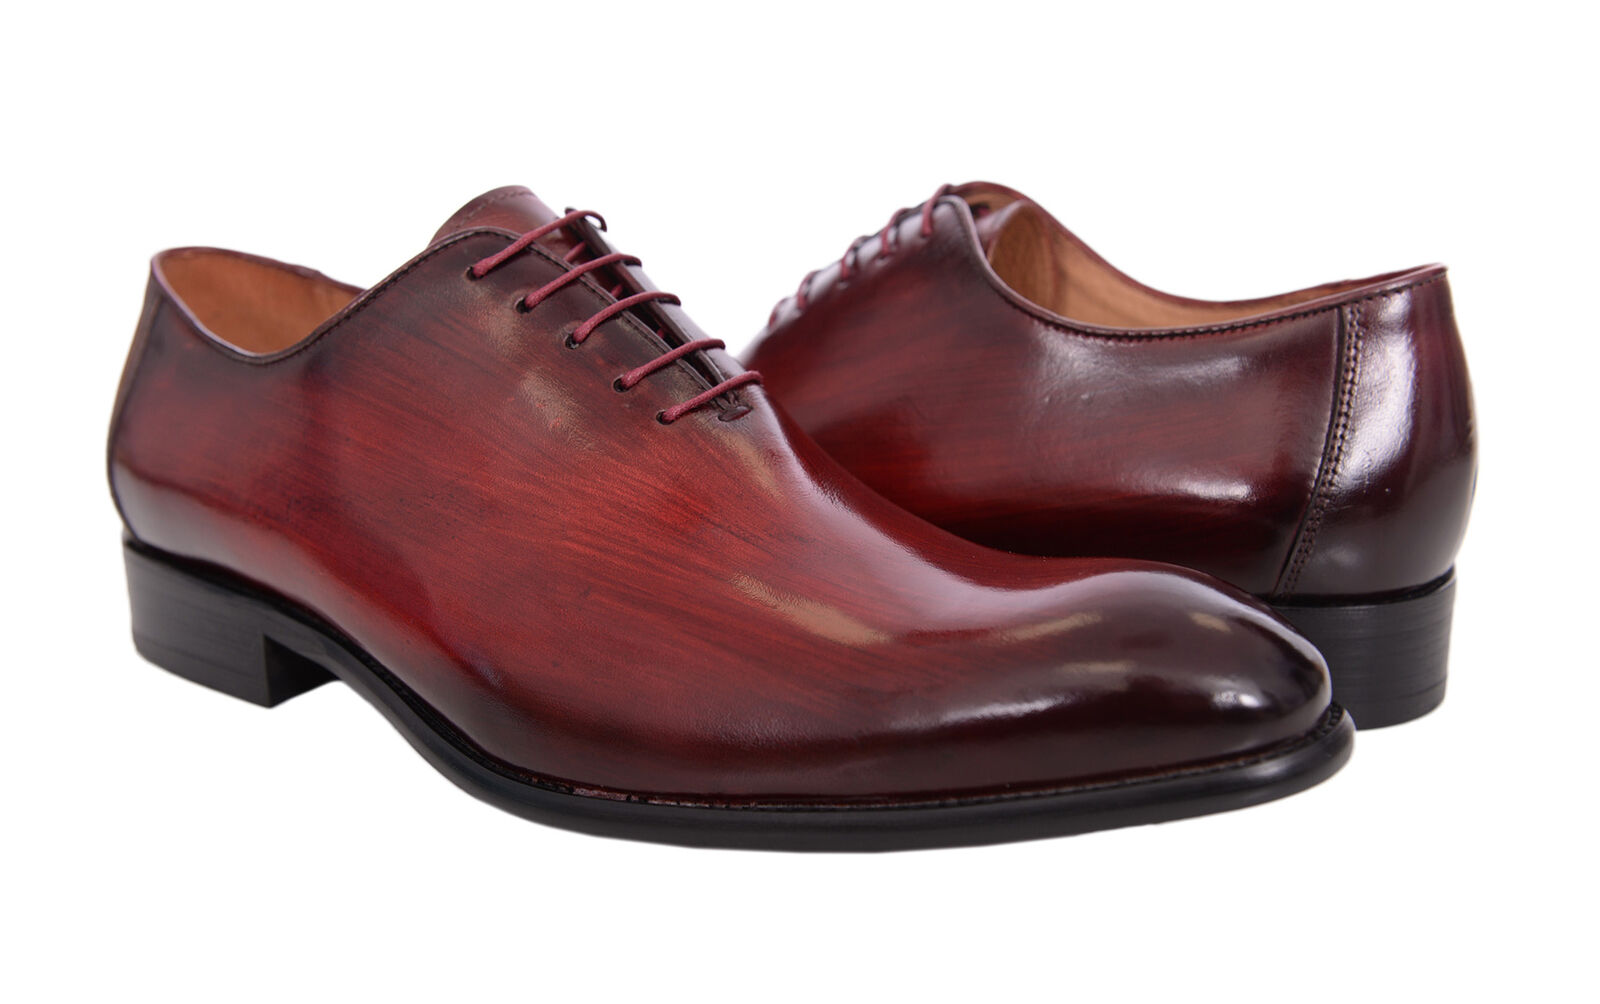 Carrucci Mens Burgundy Red Burnished Toe Wholecut Oxford Leather Dress shoes